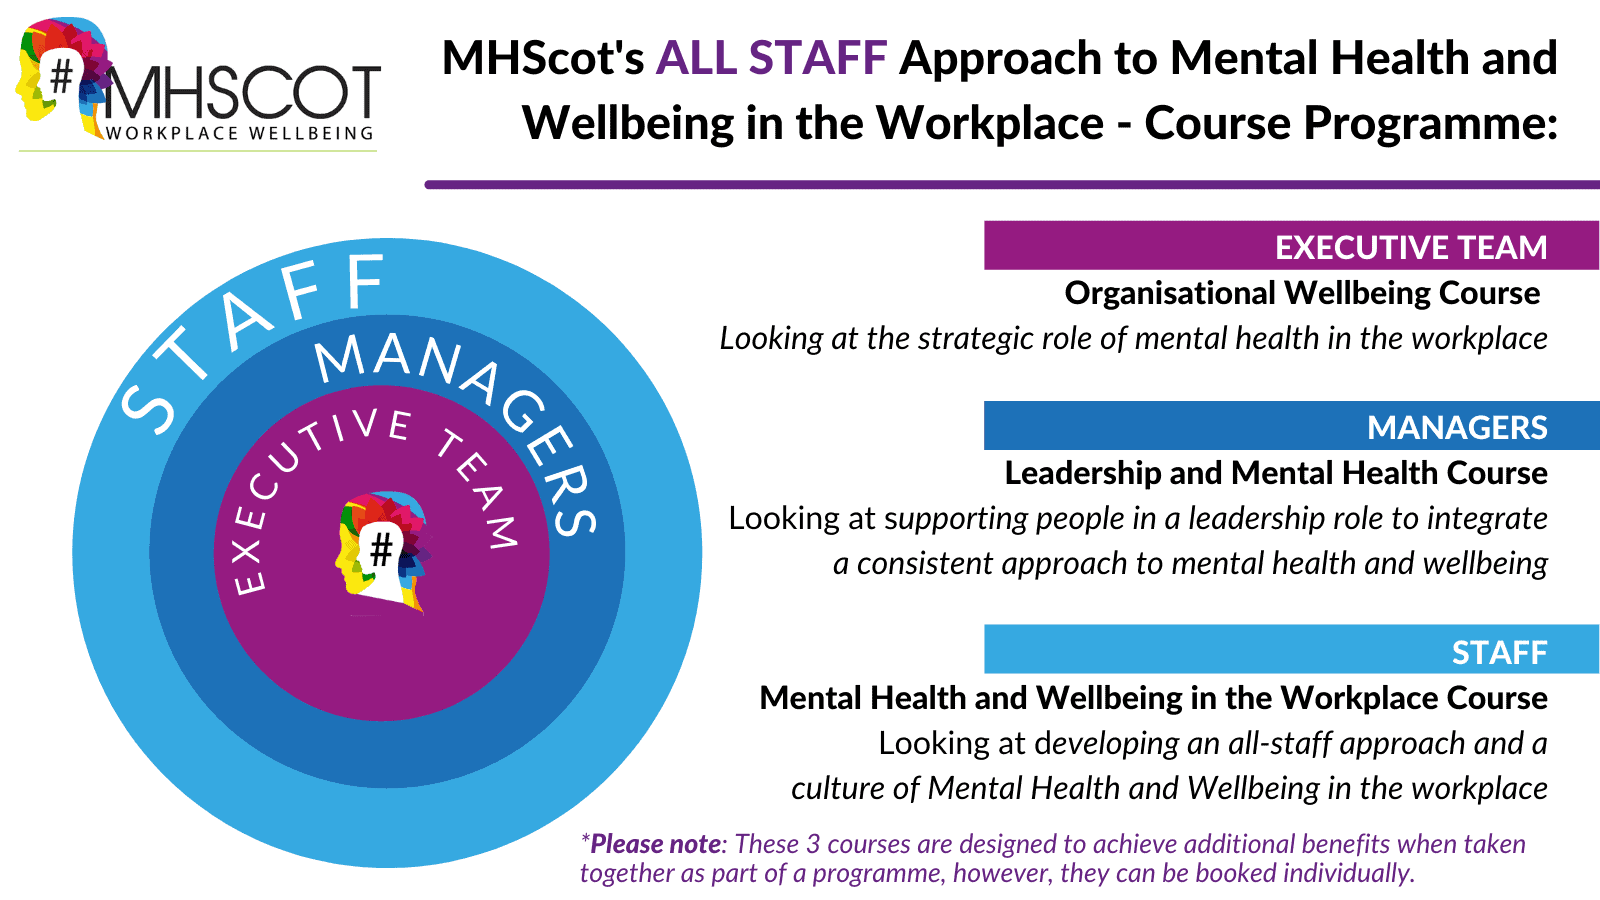 Image of MHScot's ALL STAFF Approach to Mental Health and Wellbeing in the Workplace